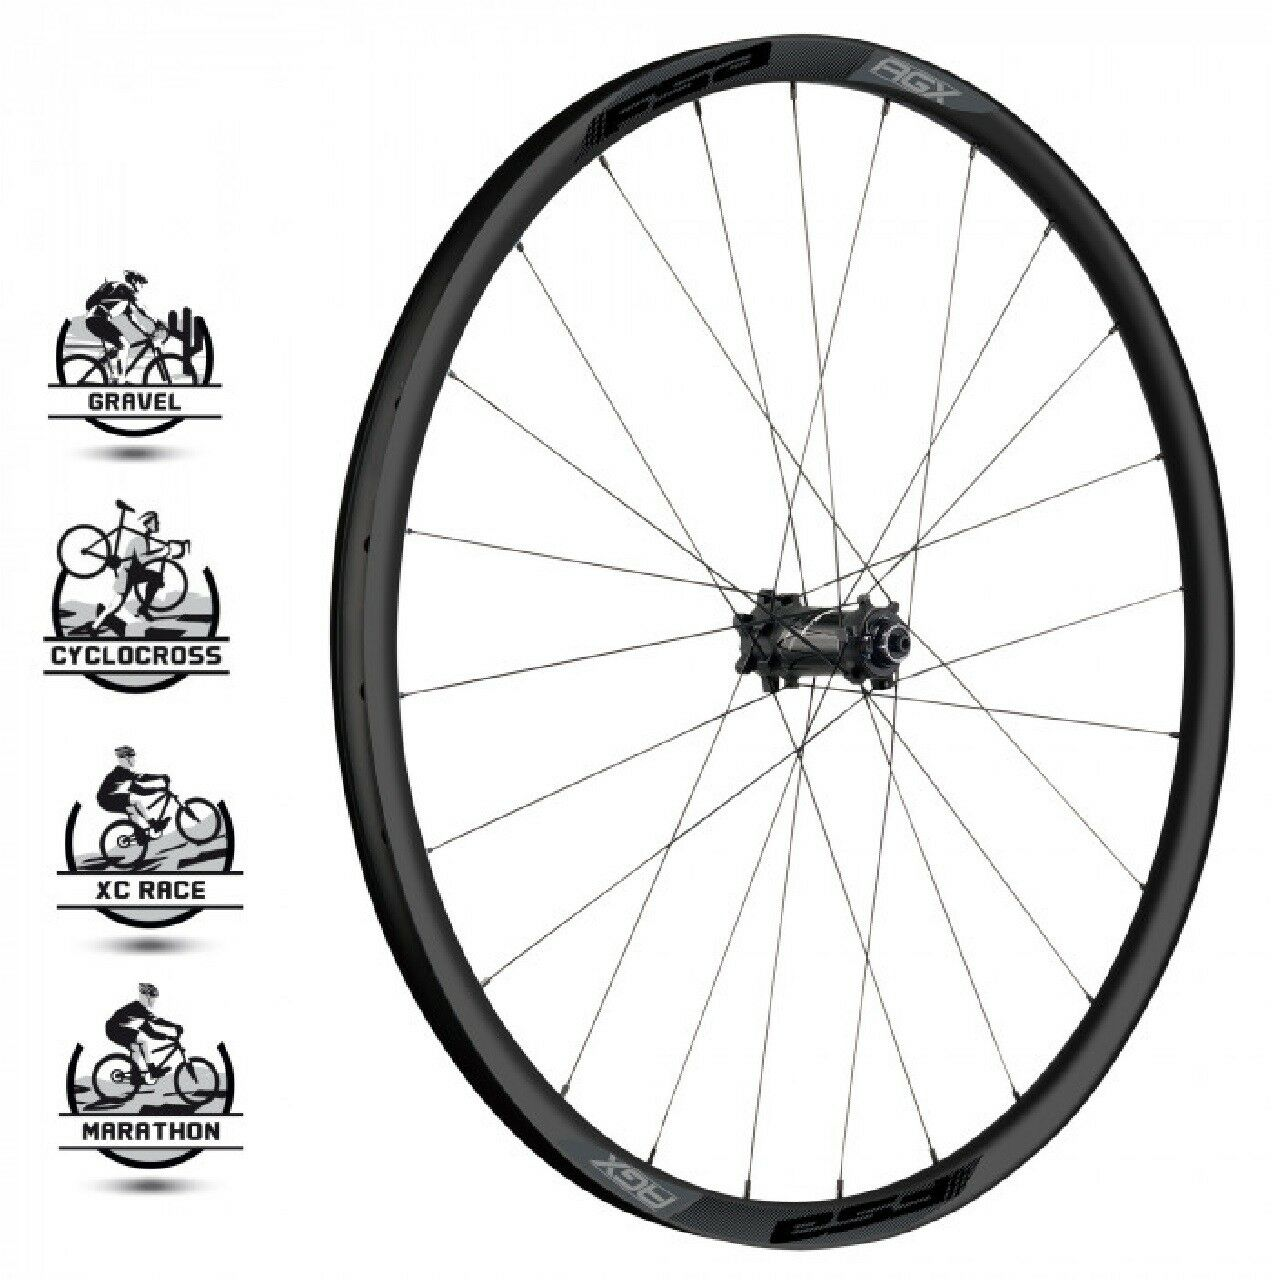 FSA Afterburner 29  AGX  Alloy Wheelset 29x24H Disc Brake (6Pawl) Shimano (pair)  supply quality product